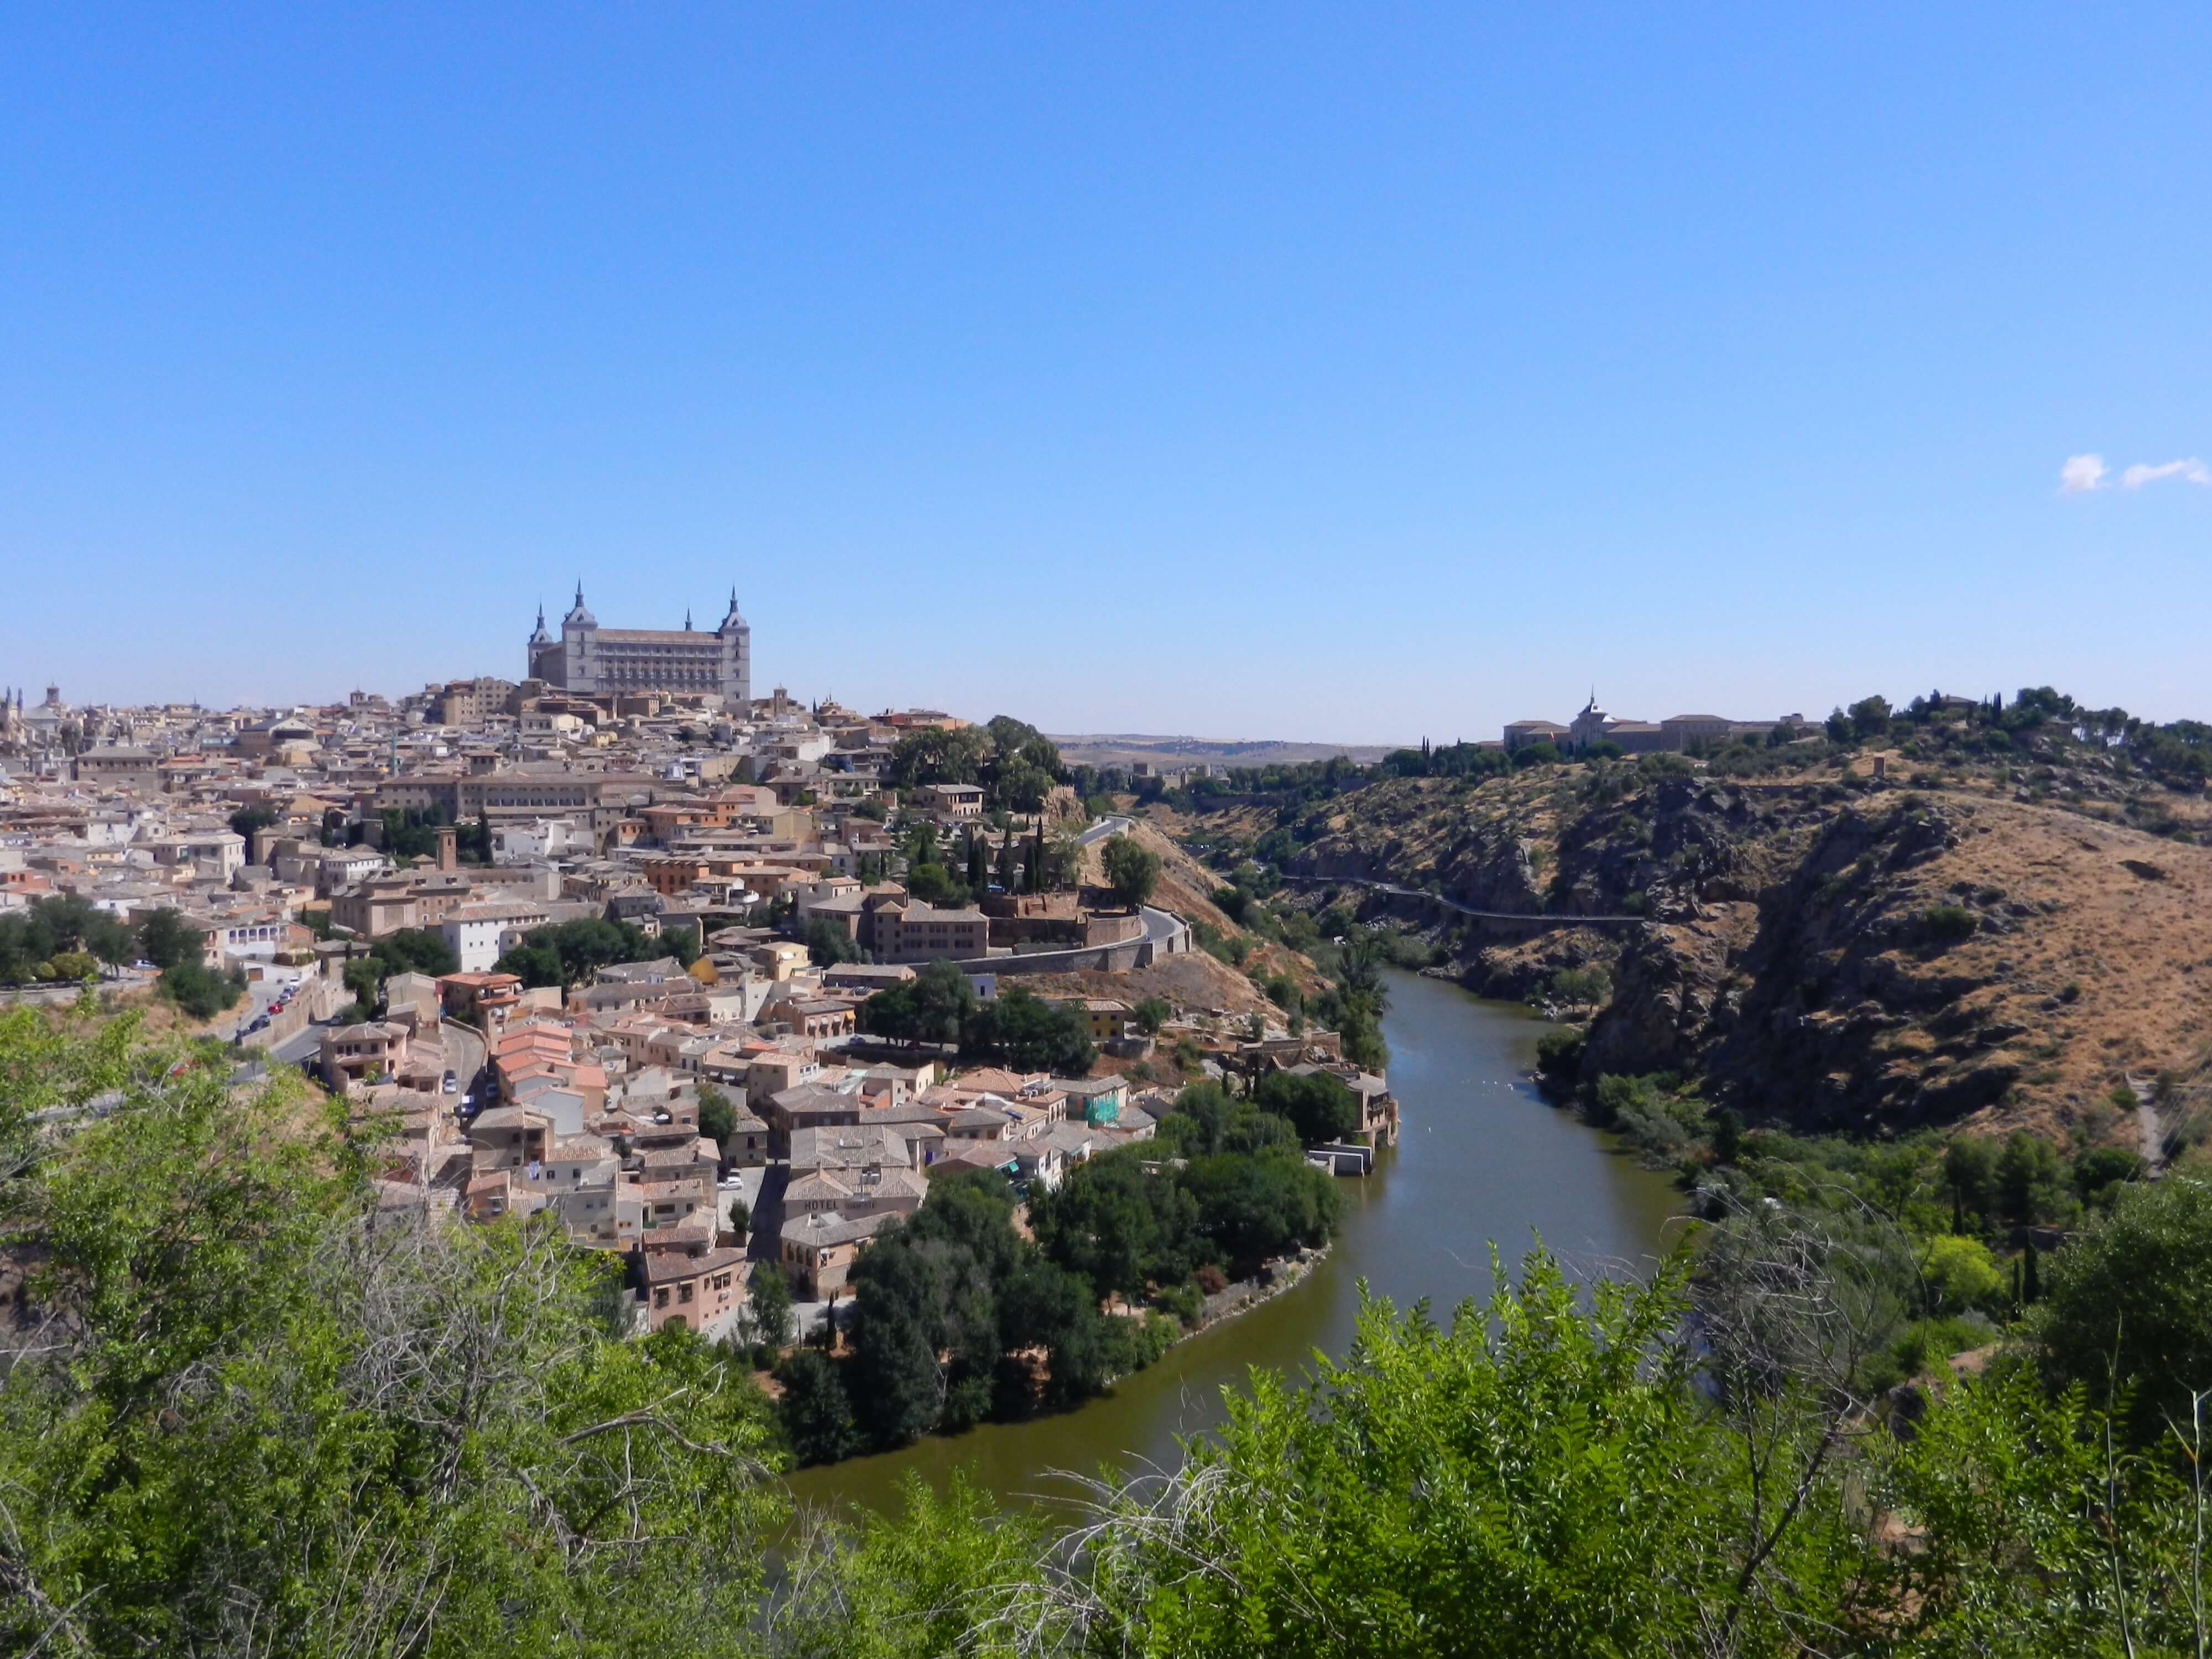 Autumn travel in Spain is best done in the medieval city of Toledo